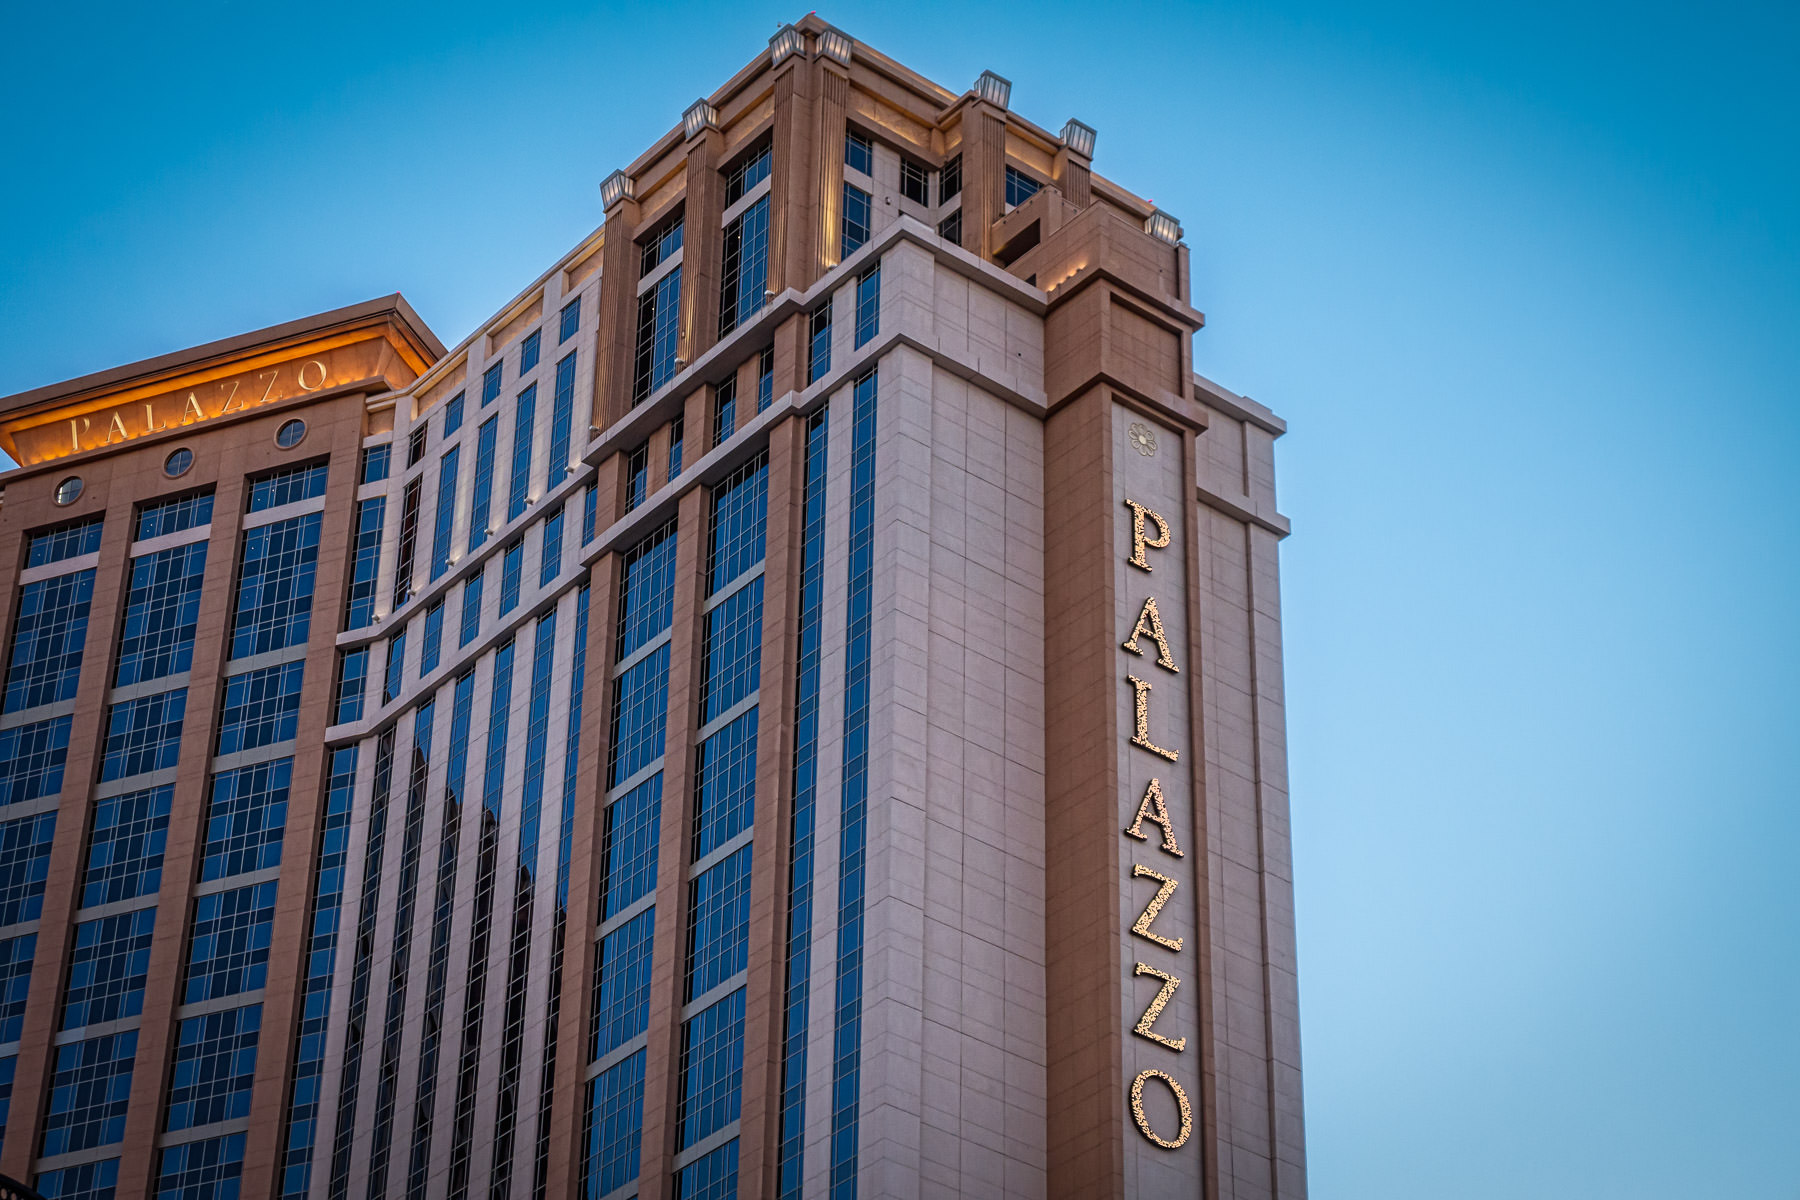 Las Vegas' Palazzo Hotel & Casino—the tallest building in Nevada and the largest by floor space in the United States—rises into the early morning sky.